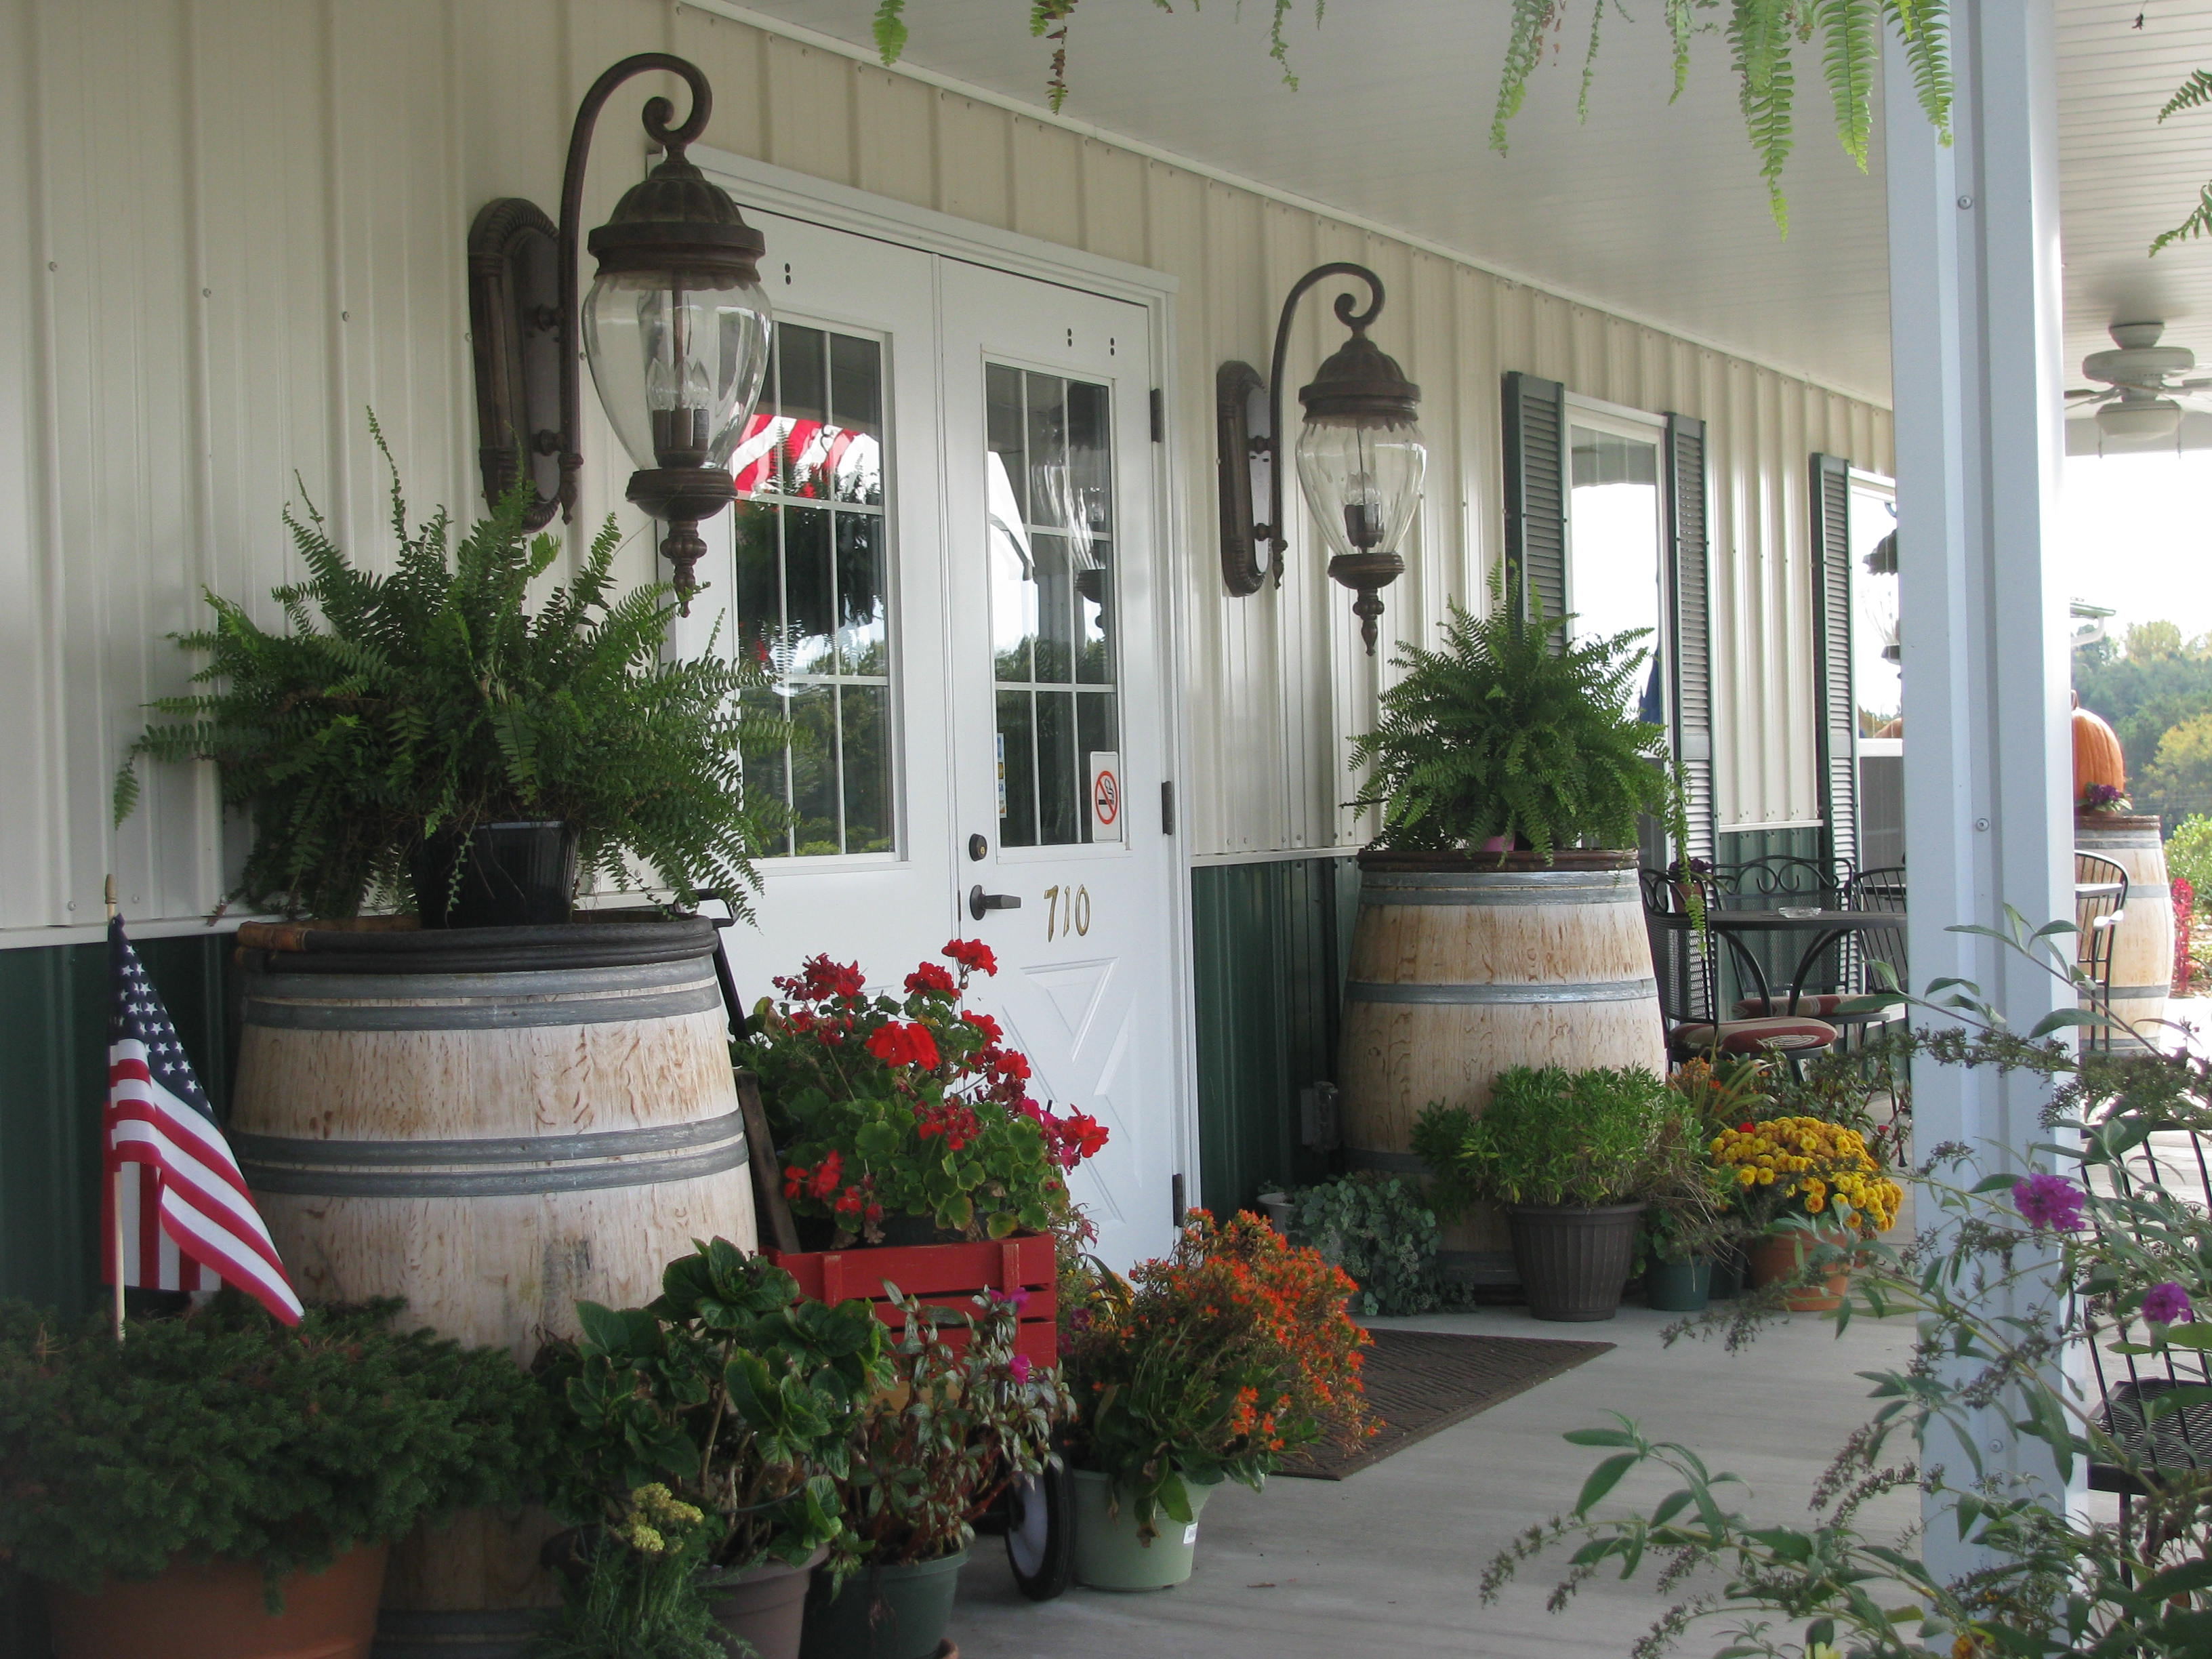 Building with flowers and wine barrels in front